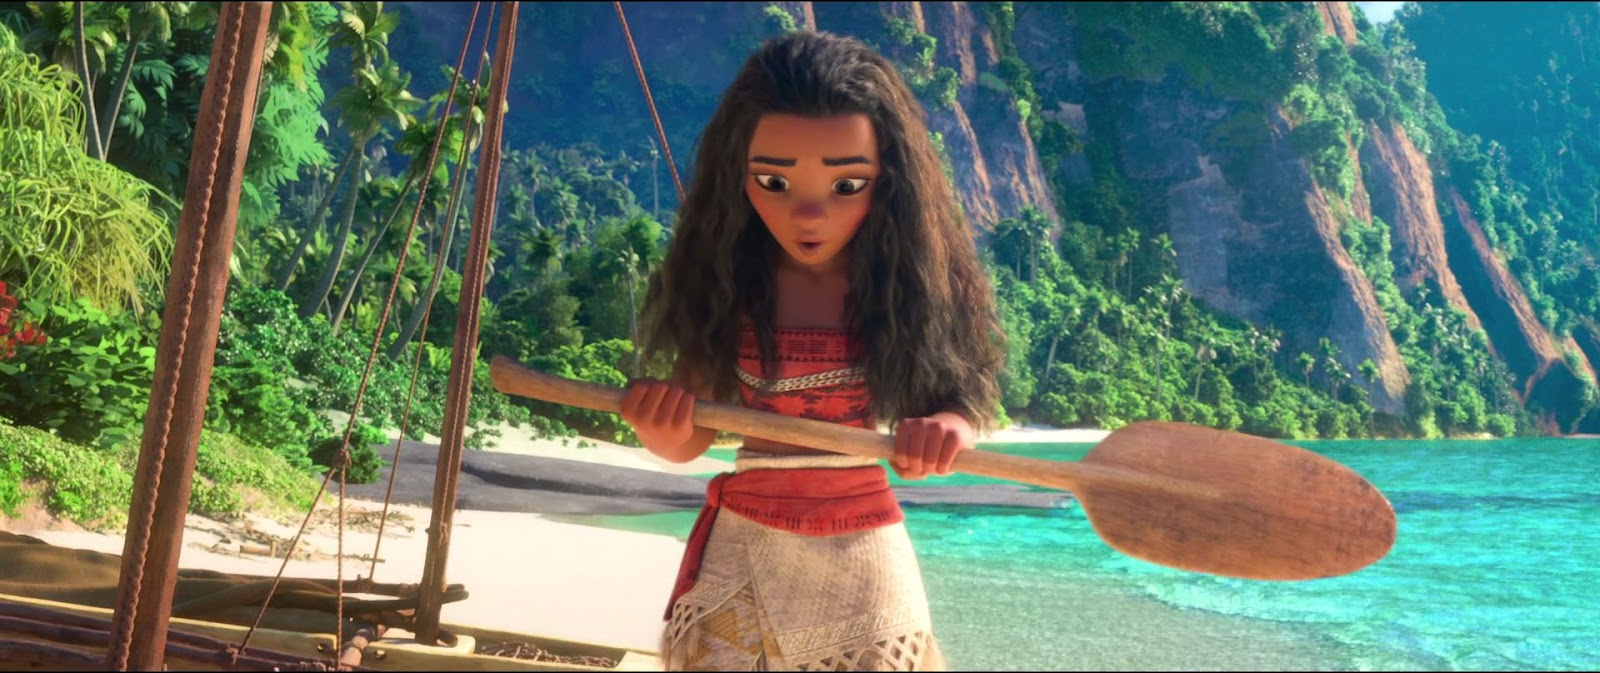 """Image of Moana from the film """"Moana"""" holding a paddle"""